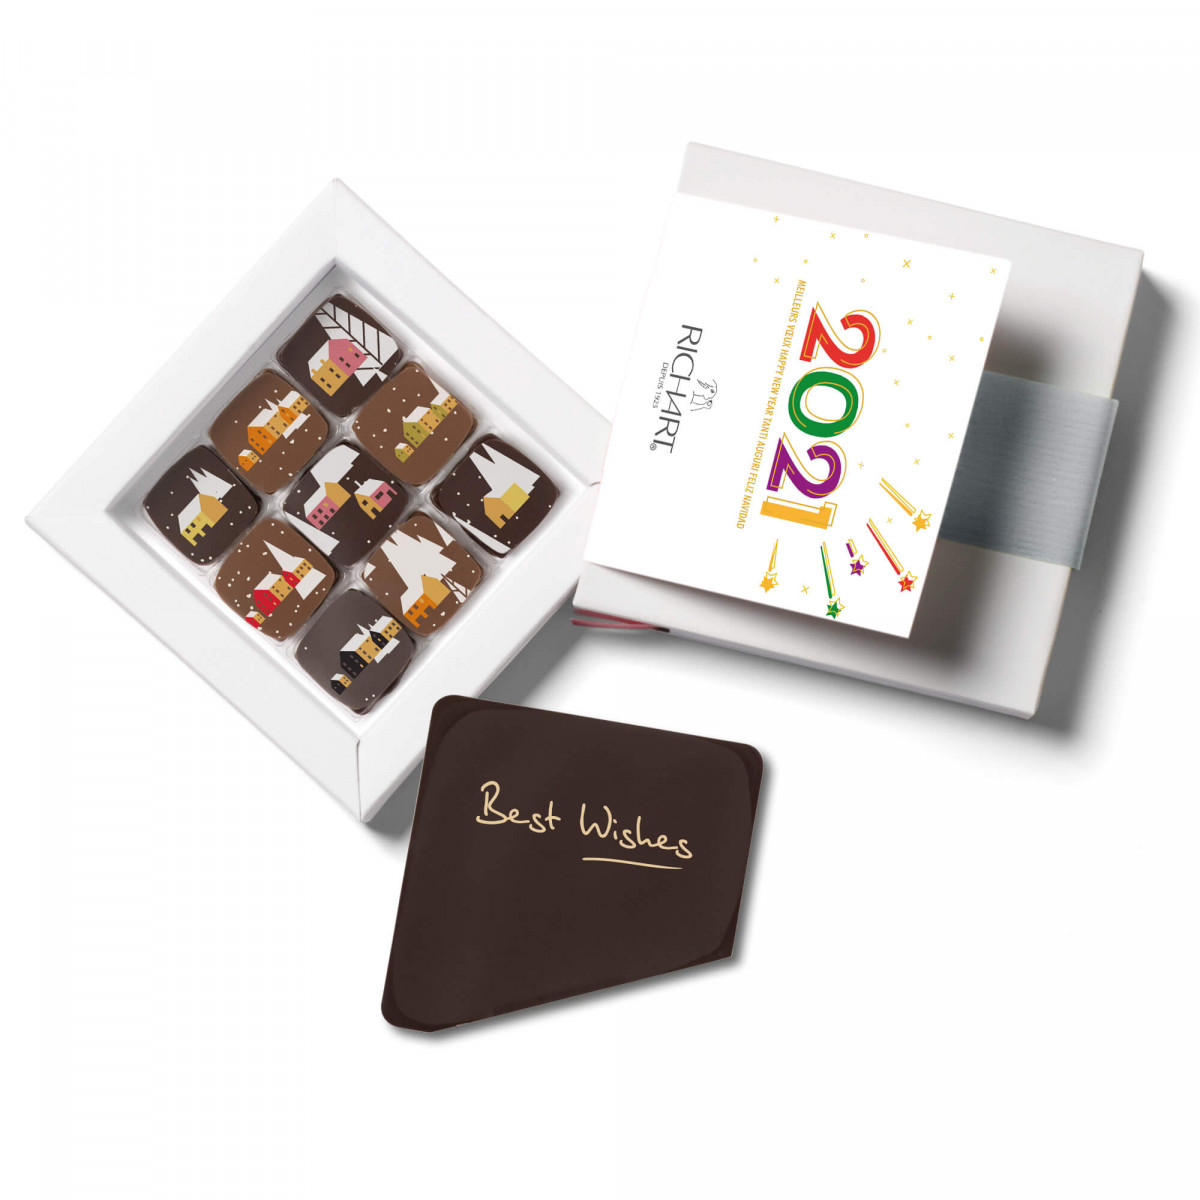 Best Wishes - Personalized gift box of 9 Happy Holidays filled chocolates and its Best Wishes chocolate message card